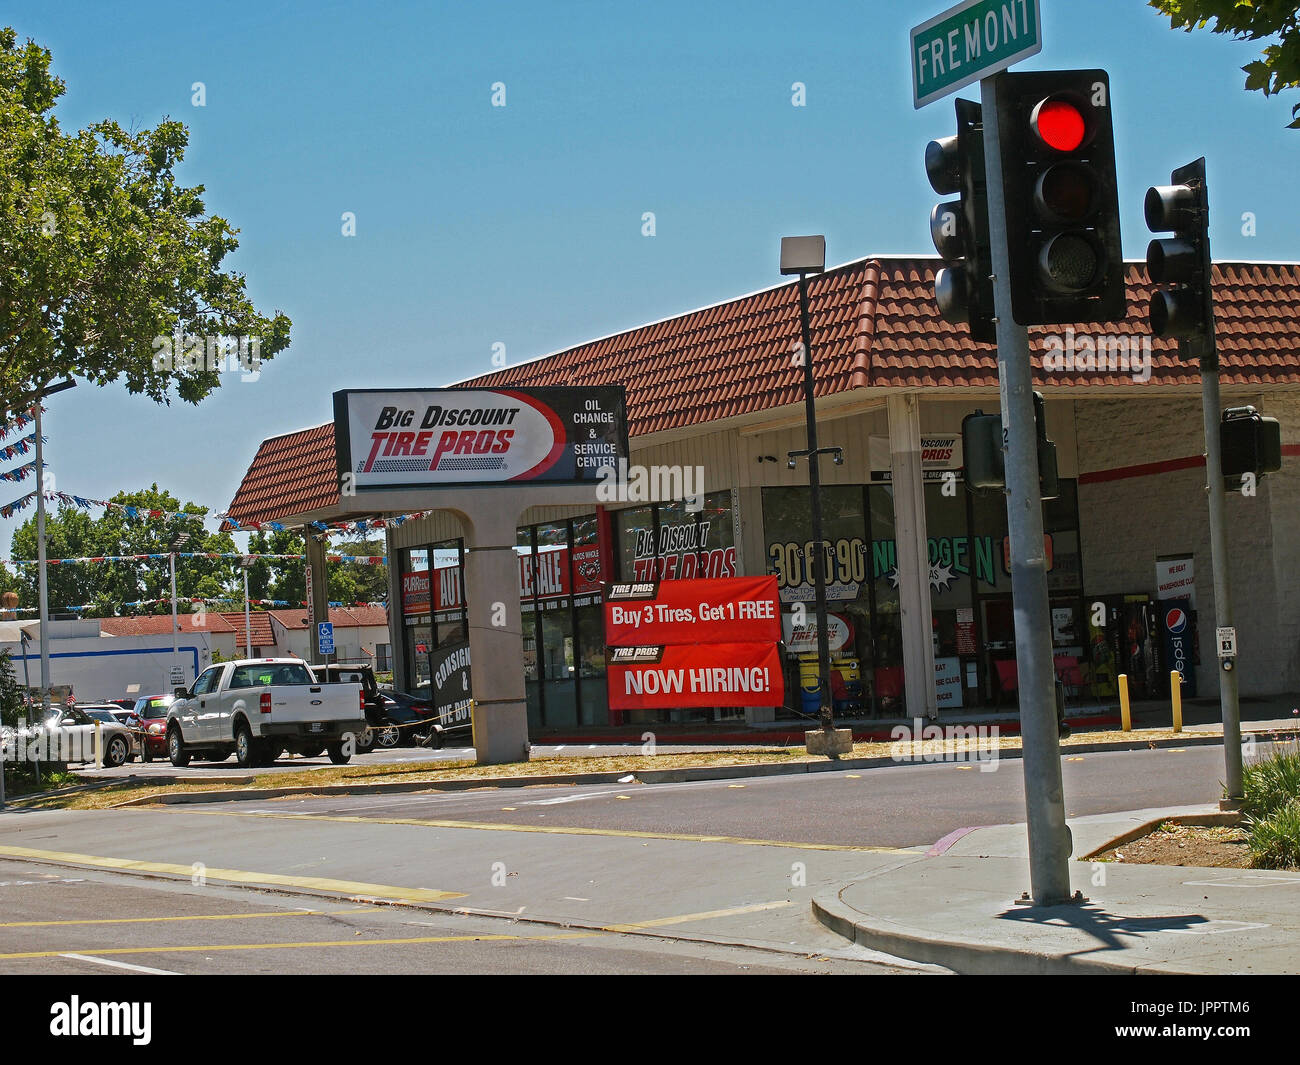 Discount chain stock photos discount chain stock images alamy big discount tire pros store fremont california stock image buycottarizona